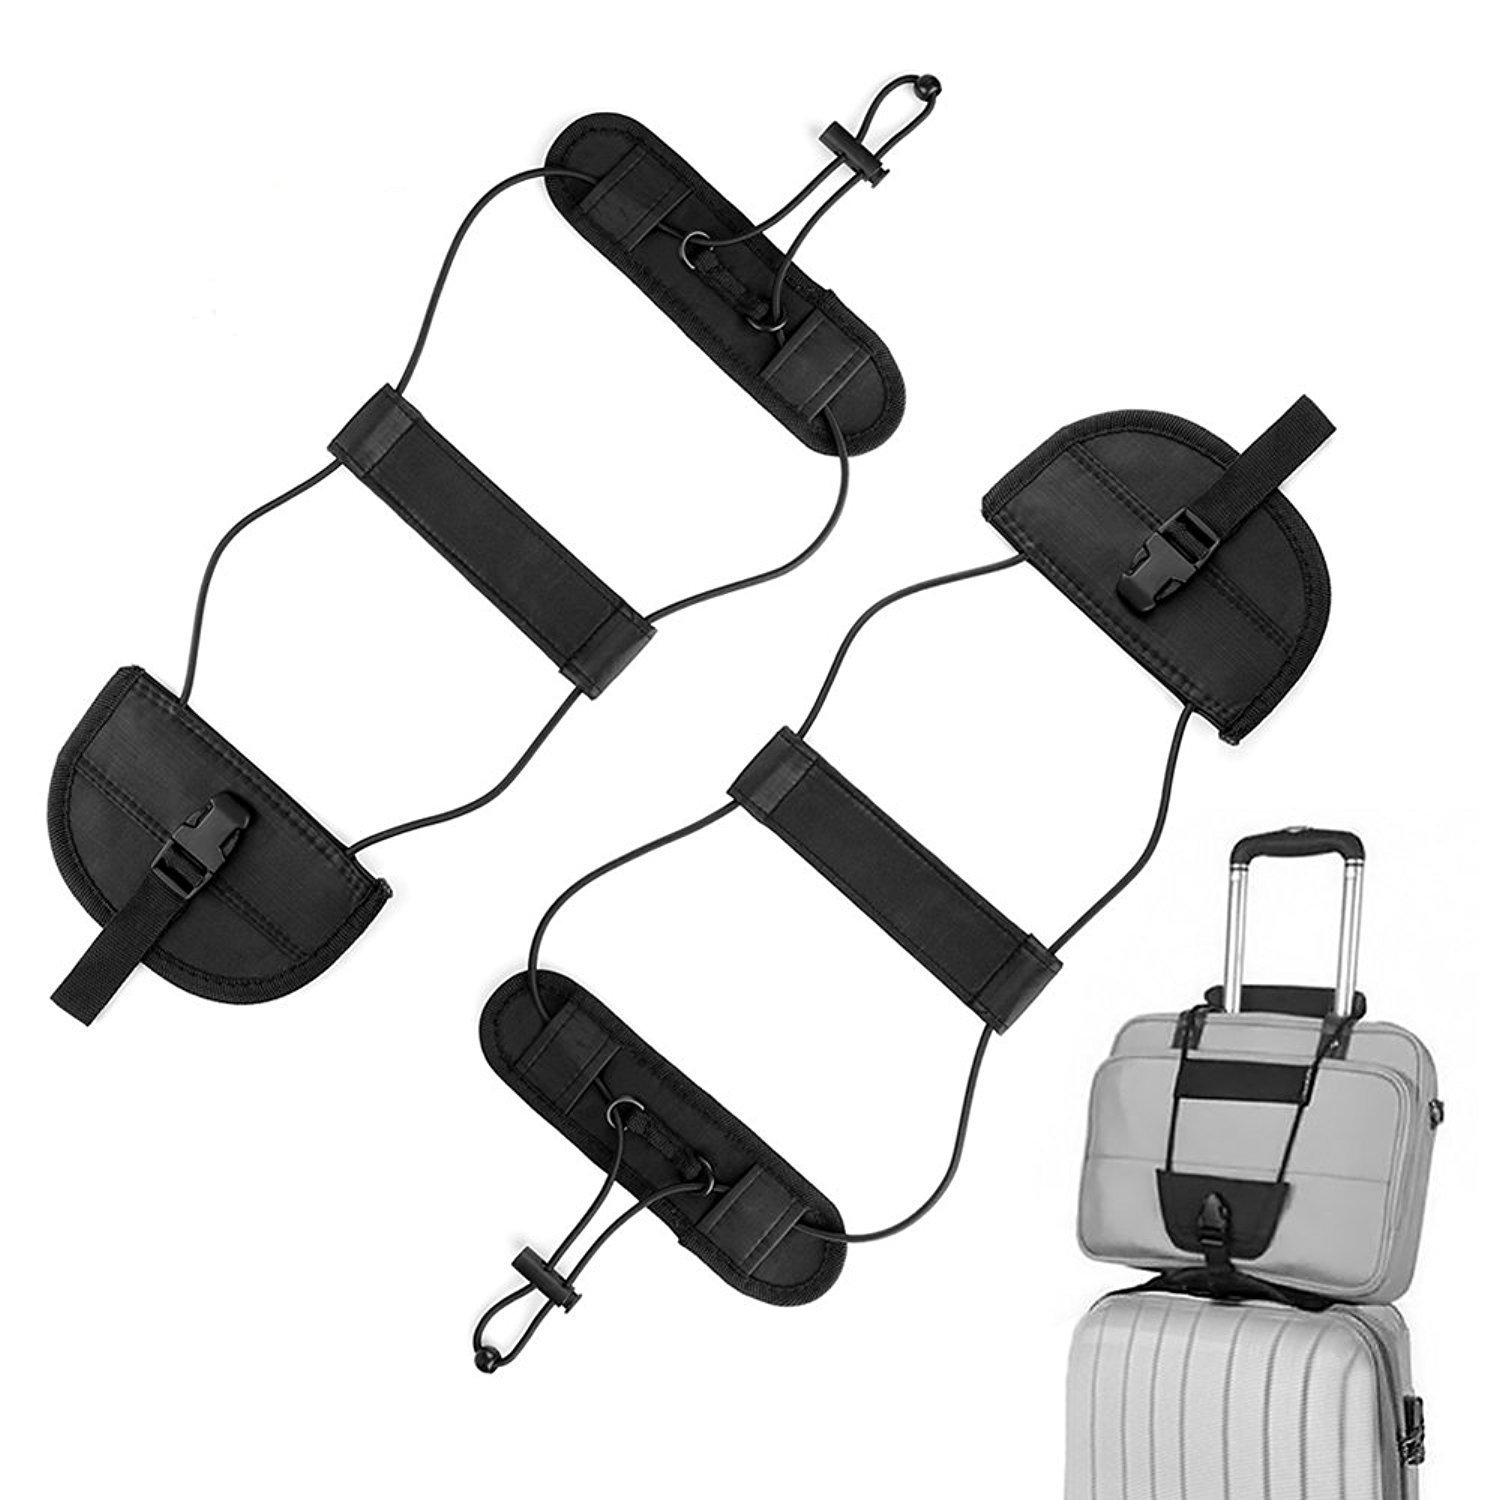 ONSON Bag Bungee, 2Pack Luggage Straps Suitcase Adjustable Belt - Lightweight and Durable Travel Bag Accessories